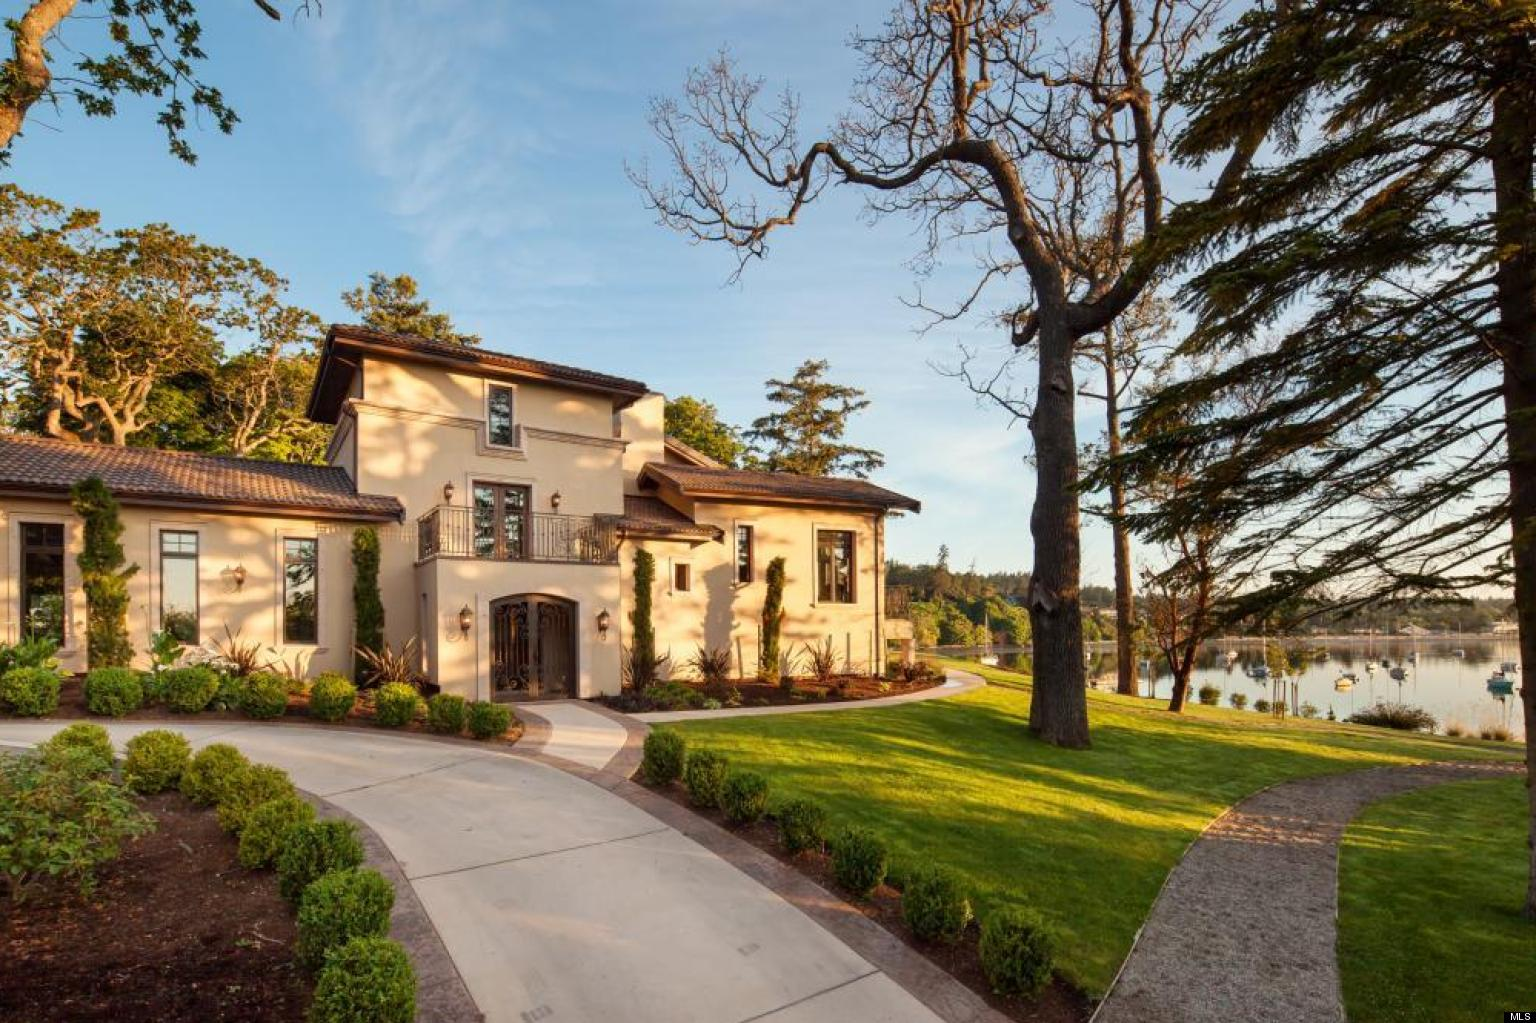 BC Real Estate: $10 Million Homes For Sale